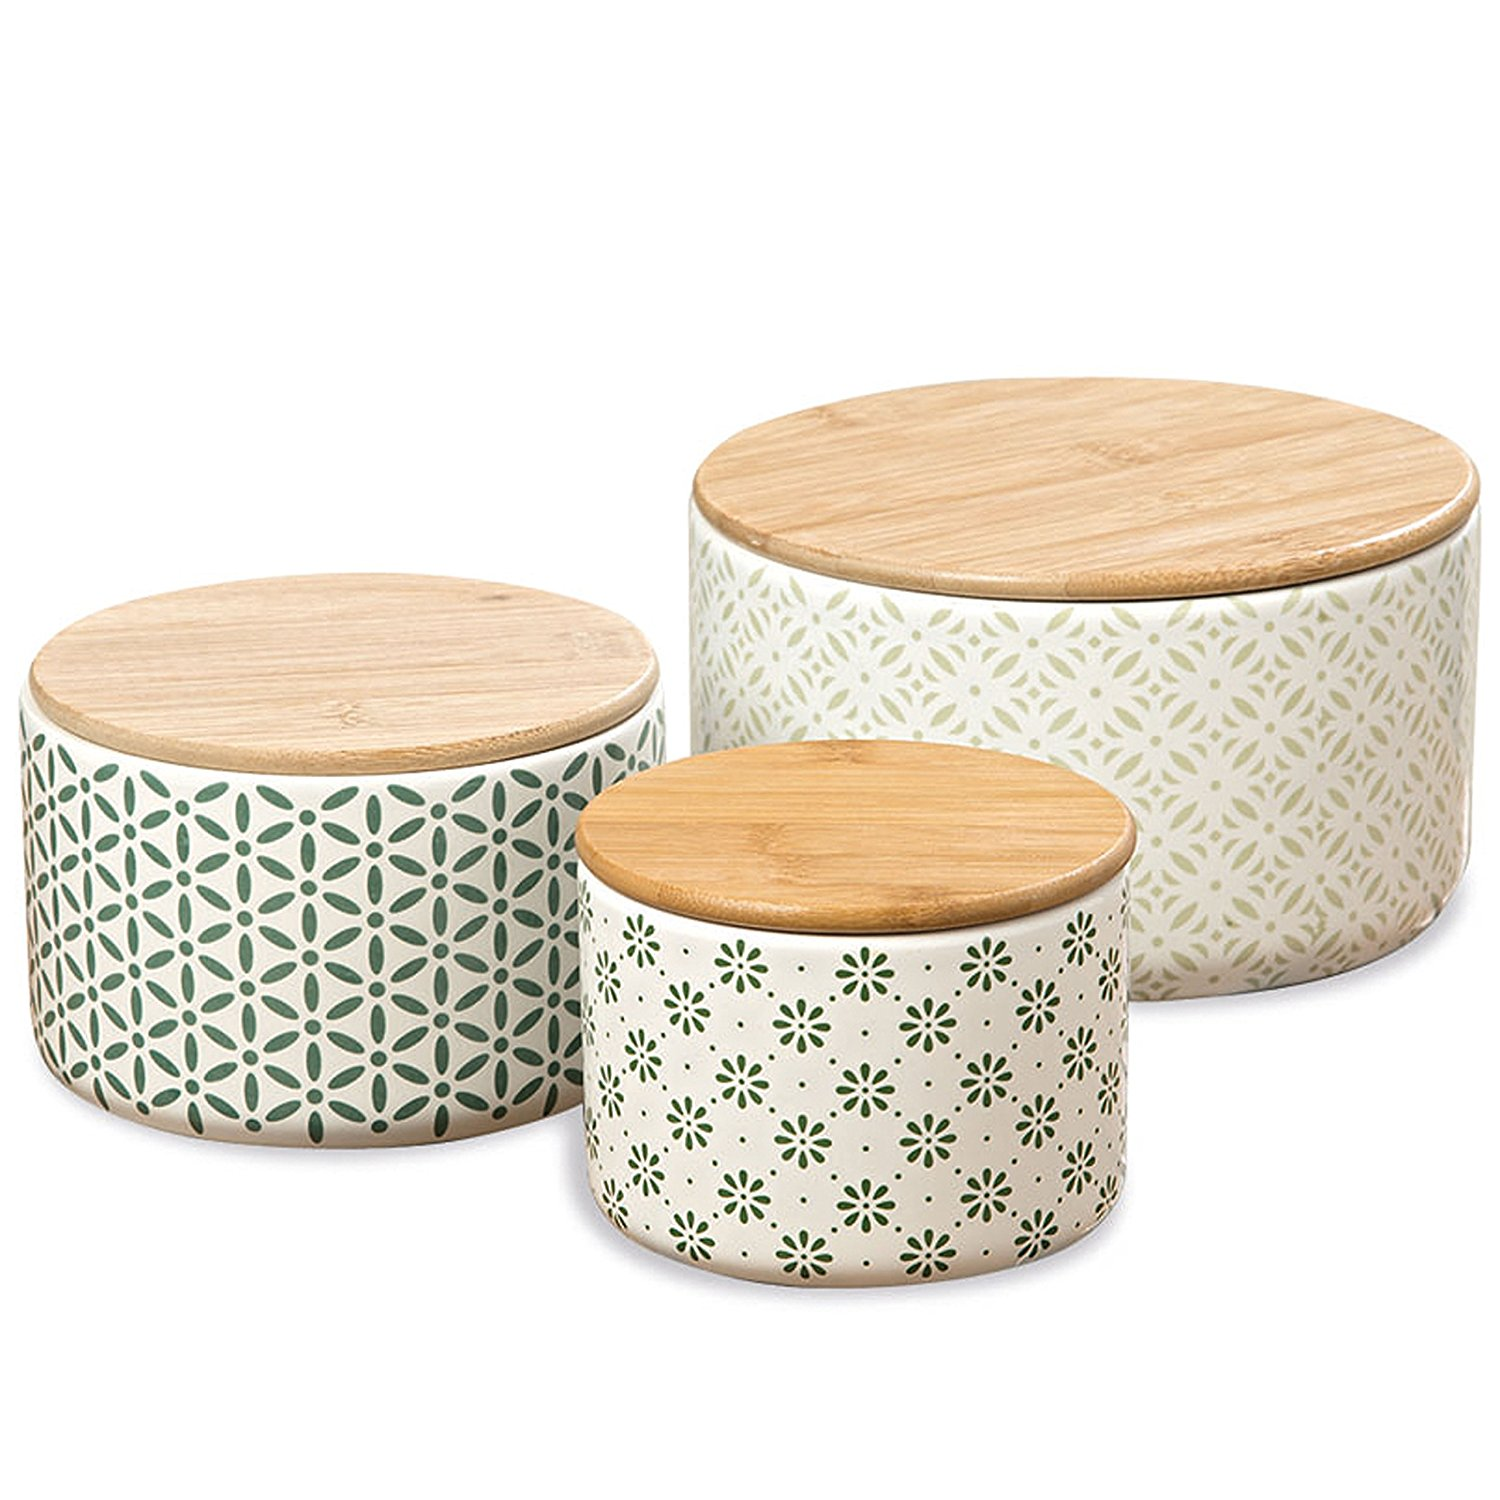 The Gastro Chic Ikat Kitchen Jars, Set of 3, For Cookies, Dry Goods, Canisters, White Glazed Ceramic,